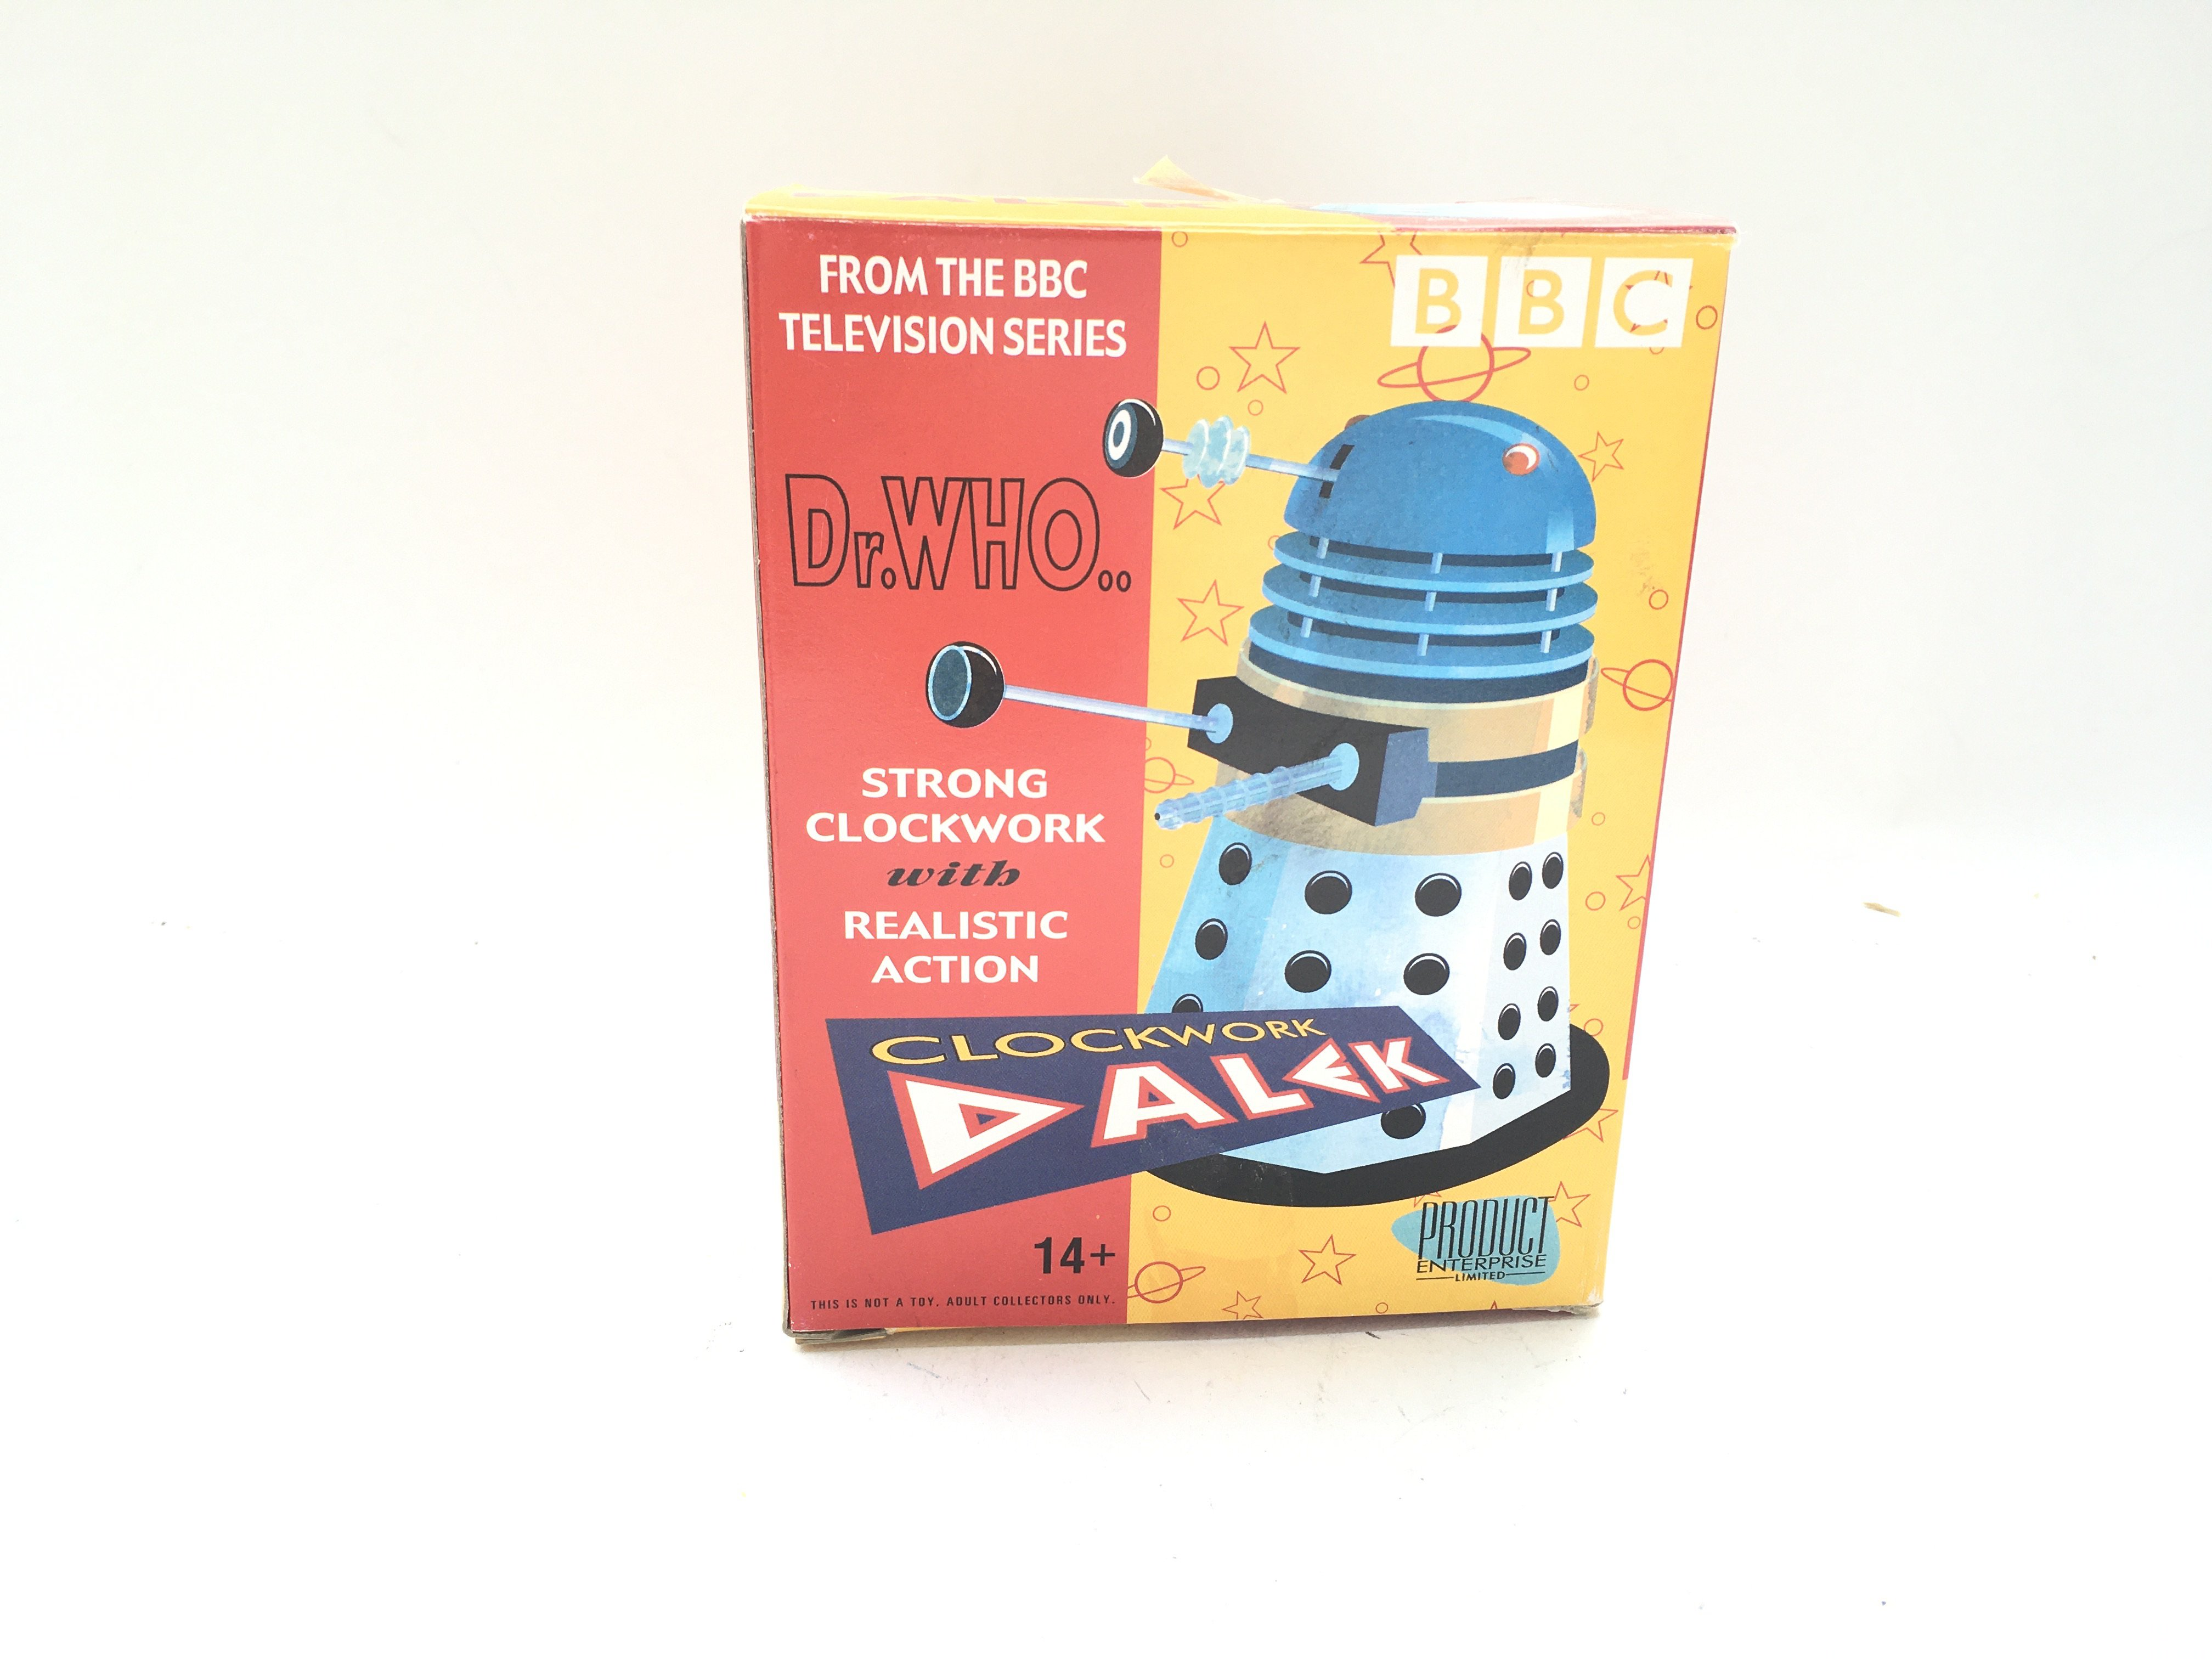 A Doctor Who Product Enterprise Limited Clockwork - Image 3 of 3